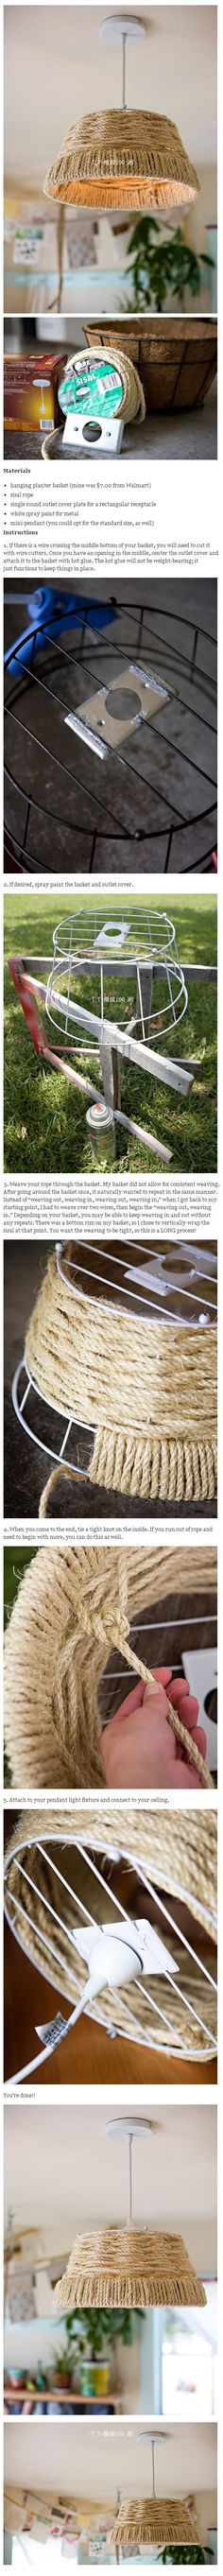 Easy Step by Step Sourcing Guide for Modern Home Decoration - woven rope pendant lamp Design Sponge DIY AshleyAnn The Best of home decor in